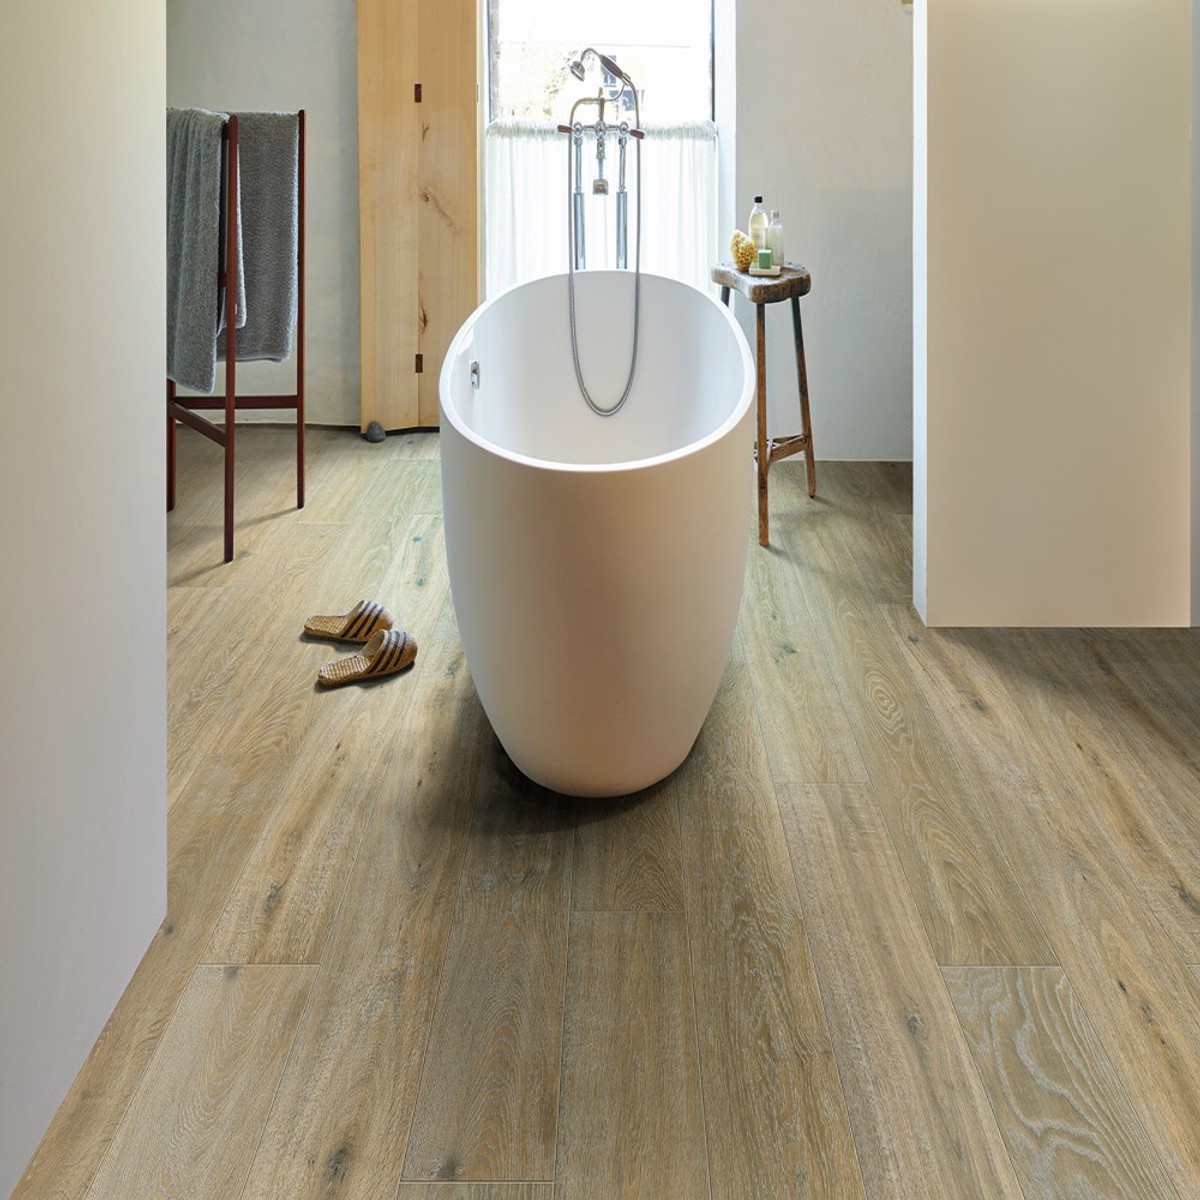 Grande, waterproof surface.     Thanks to the milled grooves in the top lacquer layer, HydroShield protection on the sides and the strong and reliable click system, Grande easily stands up to water spills, making it the ideal laminate floor for installing in kitchens and bathrooms.     9MM, long & wide planks  2050 x 240 MM | 80.7087 x 9.4500 INCH | 6.7257 x 0.7874 FT  6 PLANKS/PACK | 2,9520 M2 | 31.7750 FT2    •REAL WOOD SENSATION •NATURAL VARIETY •4-SIDED PARQUET BEVEL •HYDROSHIELD WATERPROOF SURFACE      www.tuscanytiles.co.uk